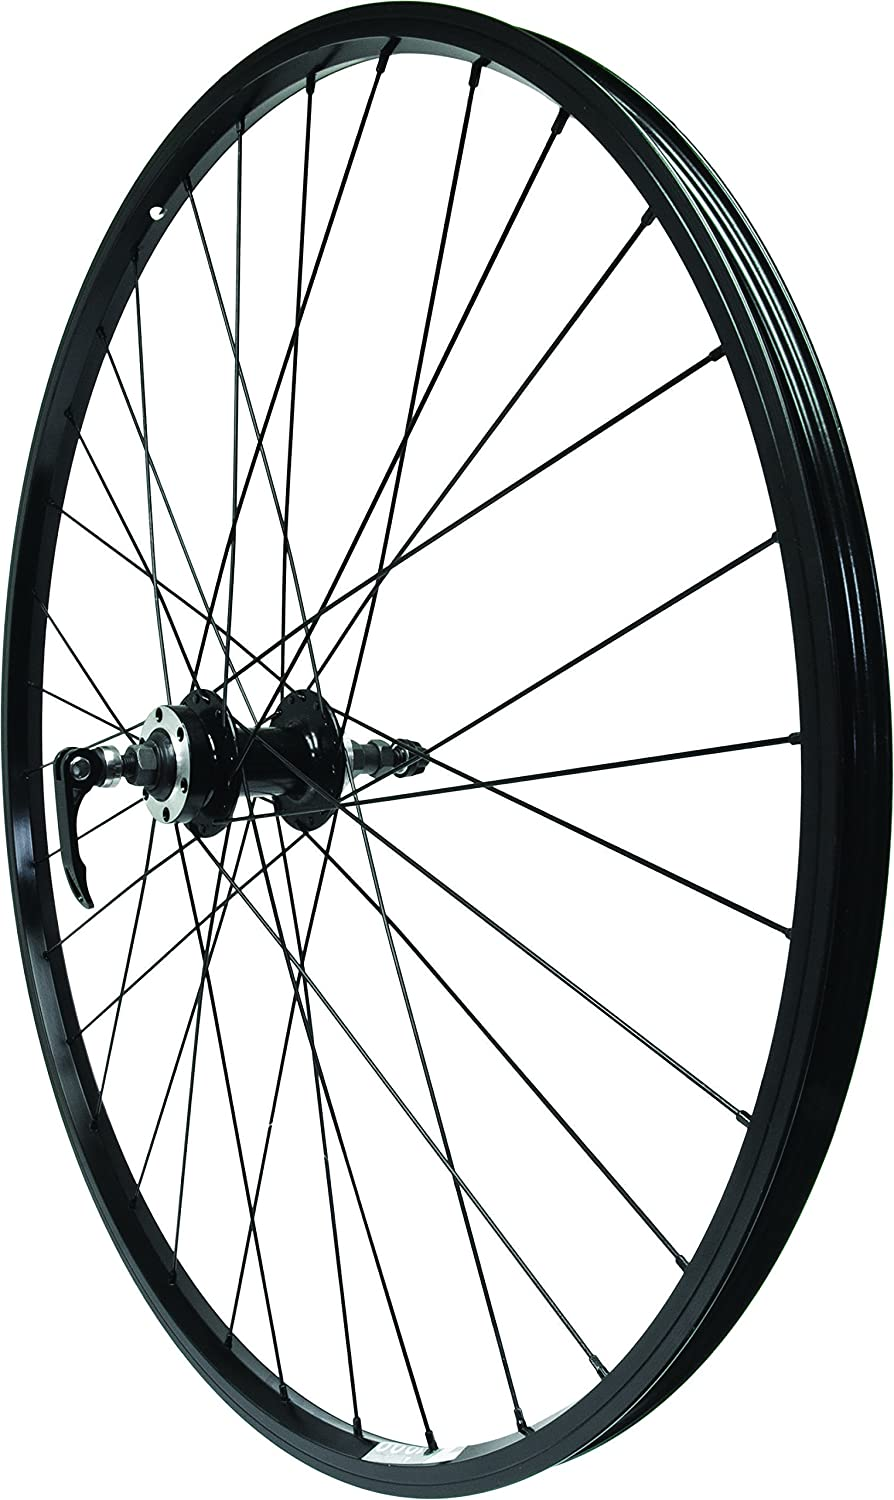 Wheel Al 26 Fwheel Alex Z1000 Qr 6Bolt Black